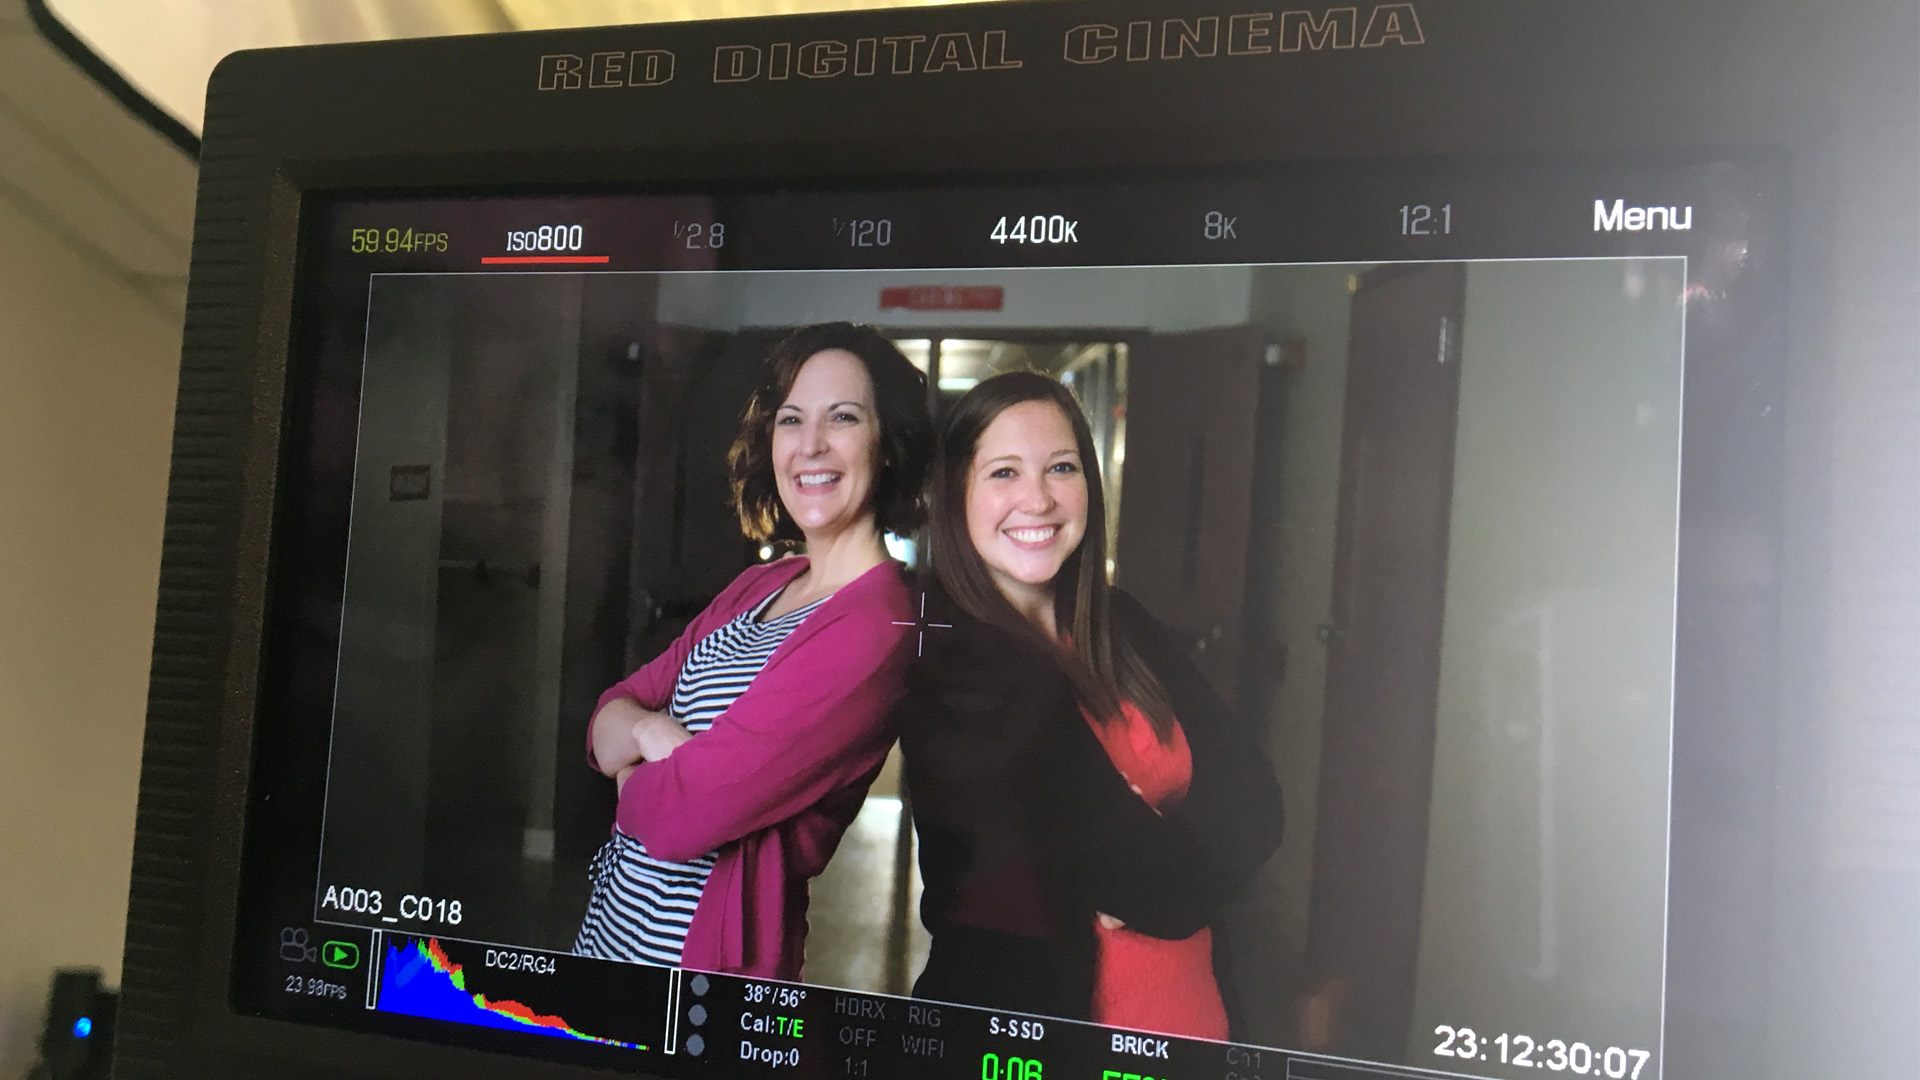 Lacey (right) and Melissa (left) are such generous and talented teachers. We couldn't have asked for better collaborators in the writing and production of this project. In this setup, you can see the goodness just radiating from this dynamic duo!